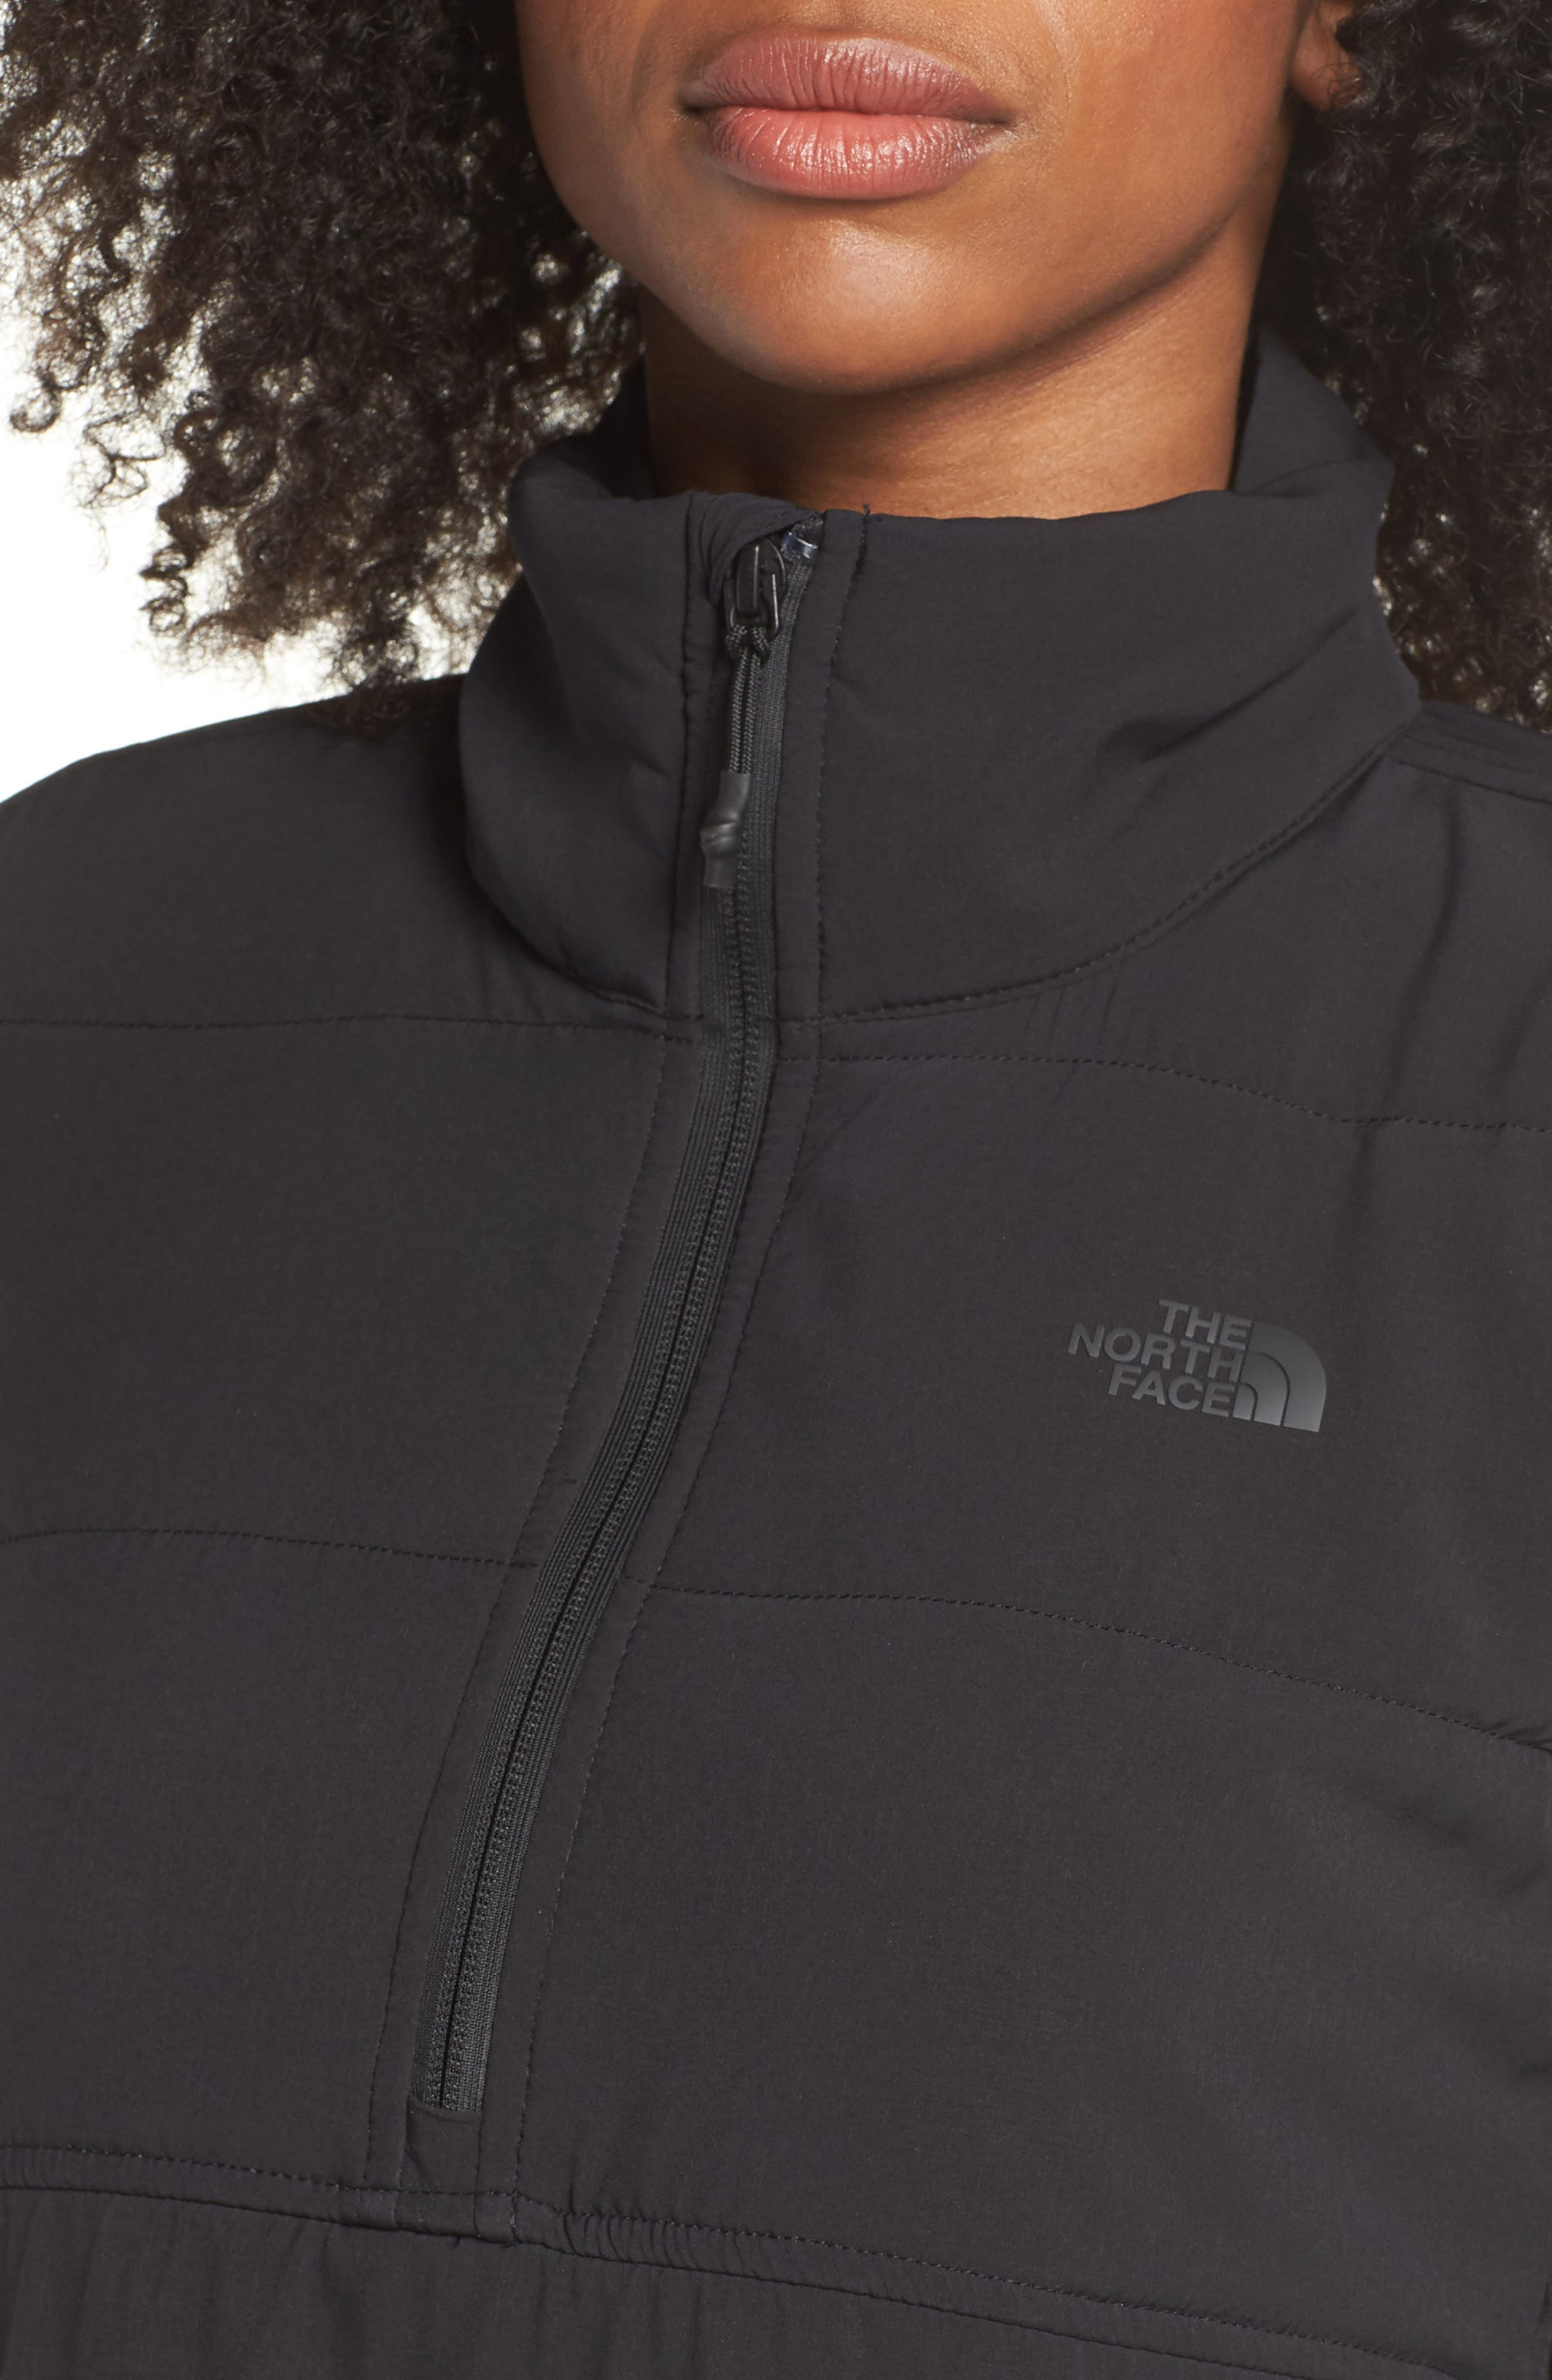 Mountain Sweatshirt Quarter Zip Pullover,                             Alternate thumbnail 11, color,